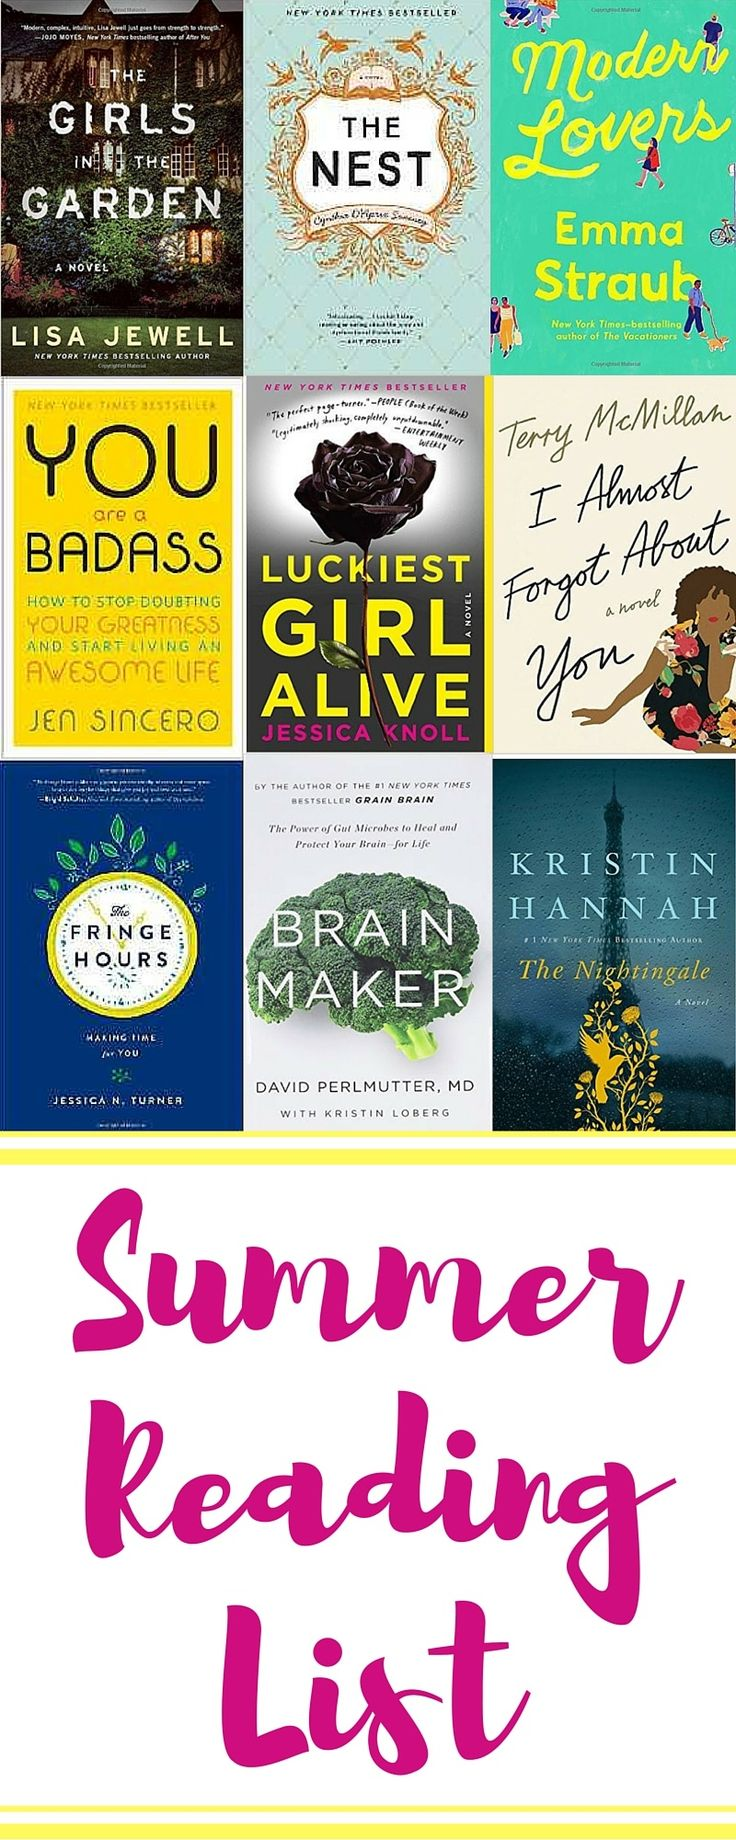 Looking For A Good Summer Read? Here's A List Of Great Summer Books,  Including